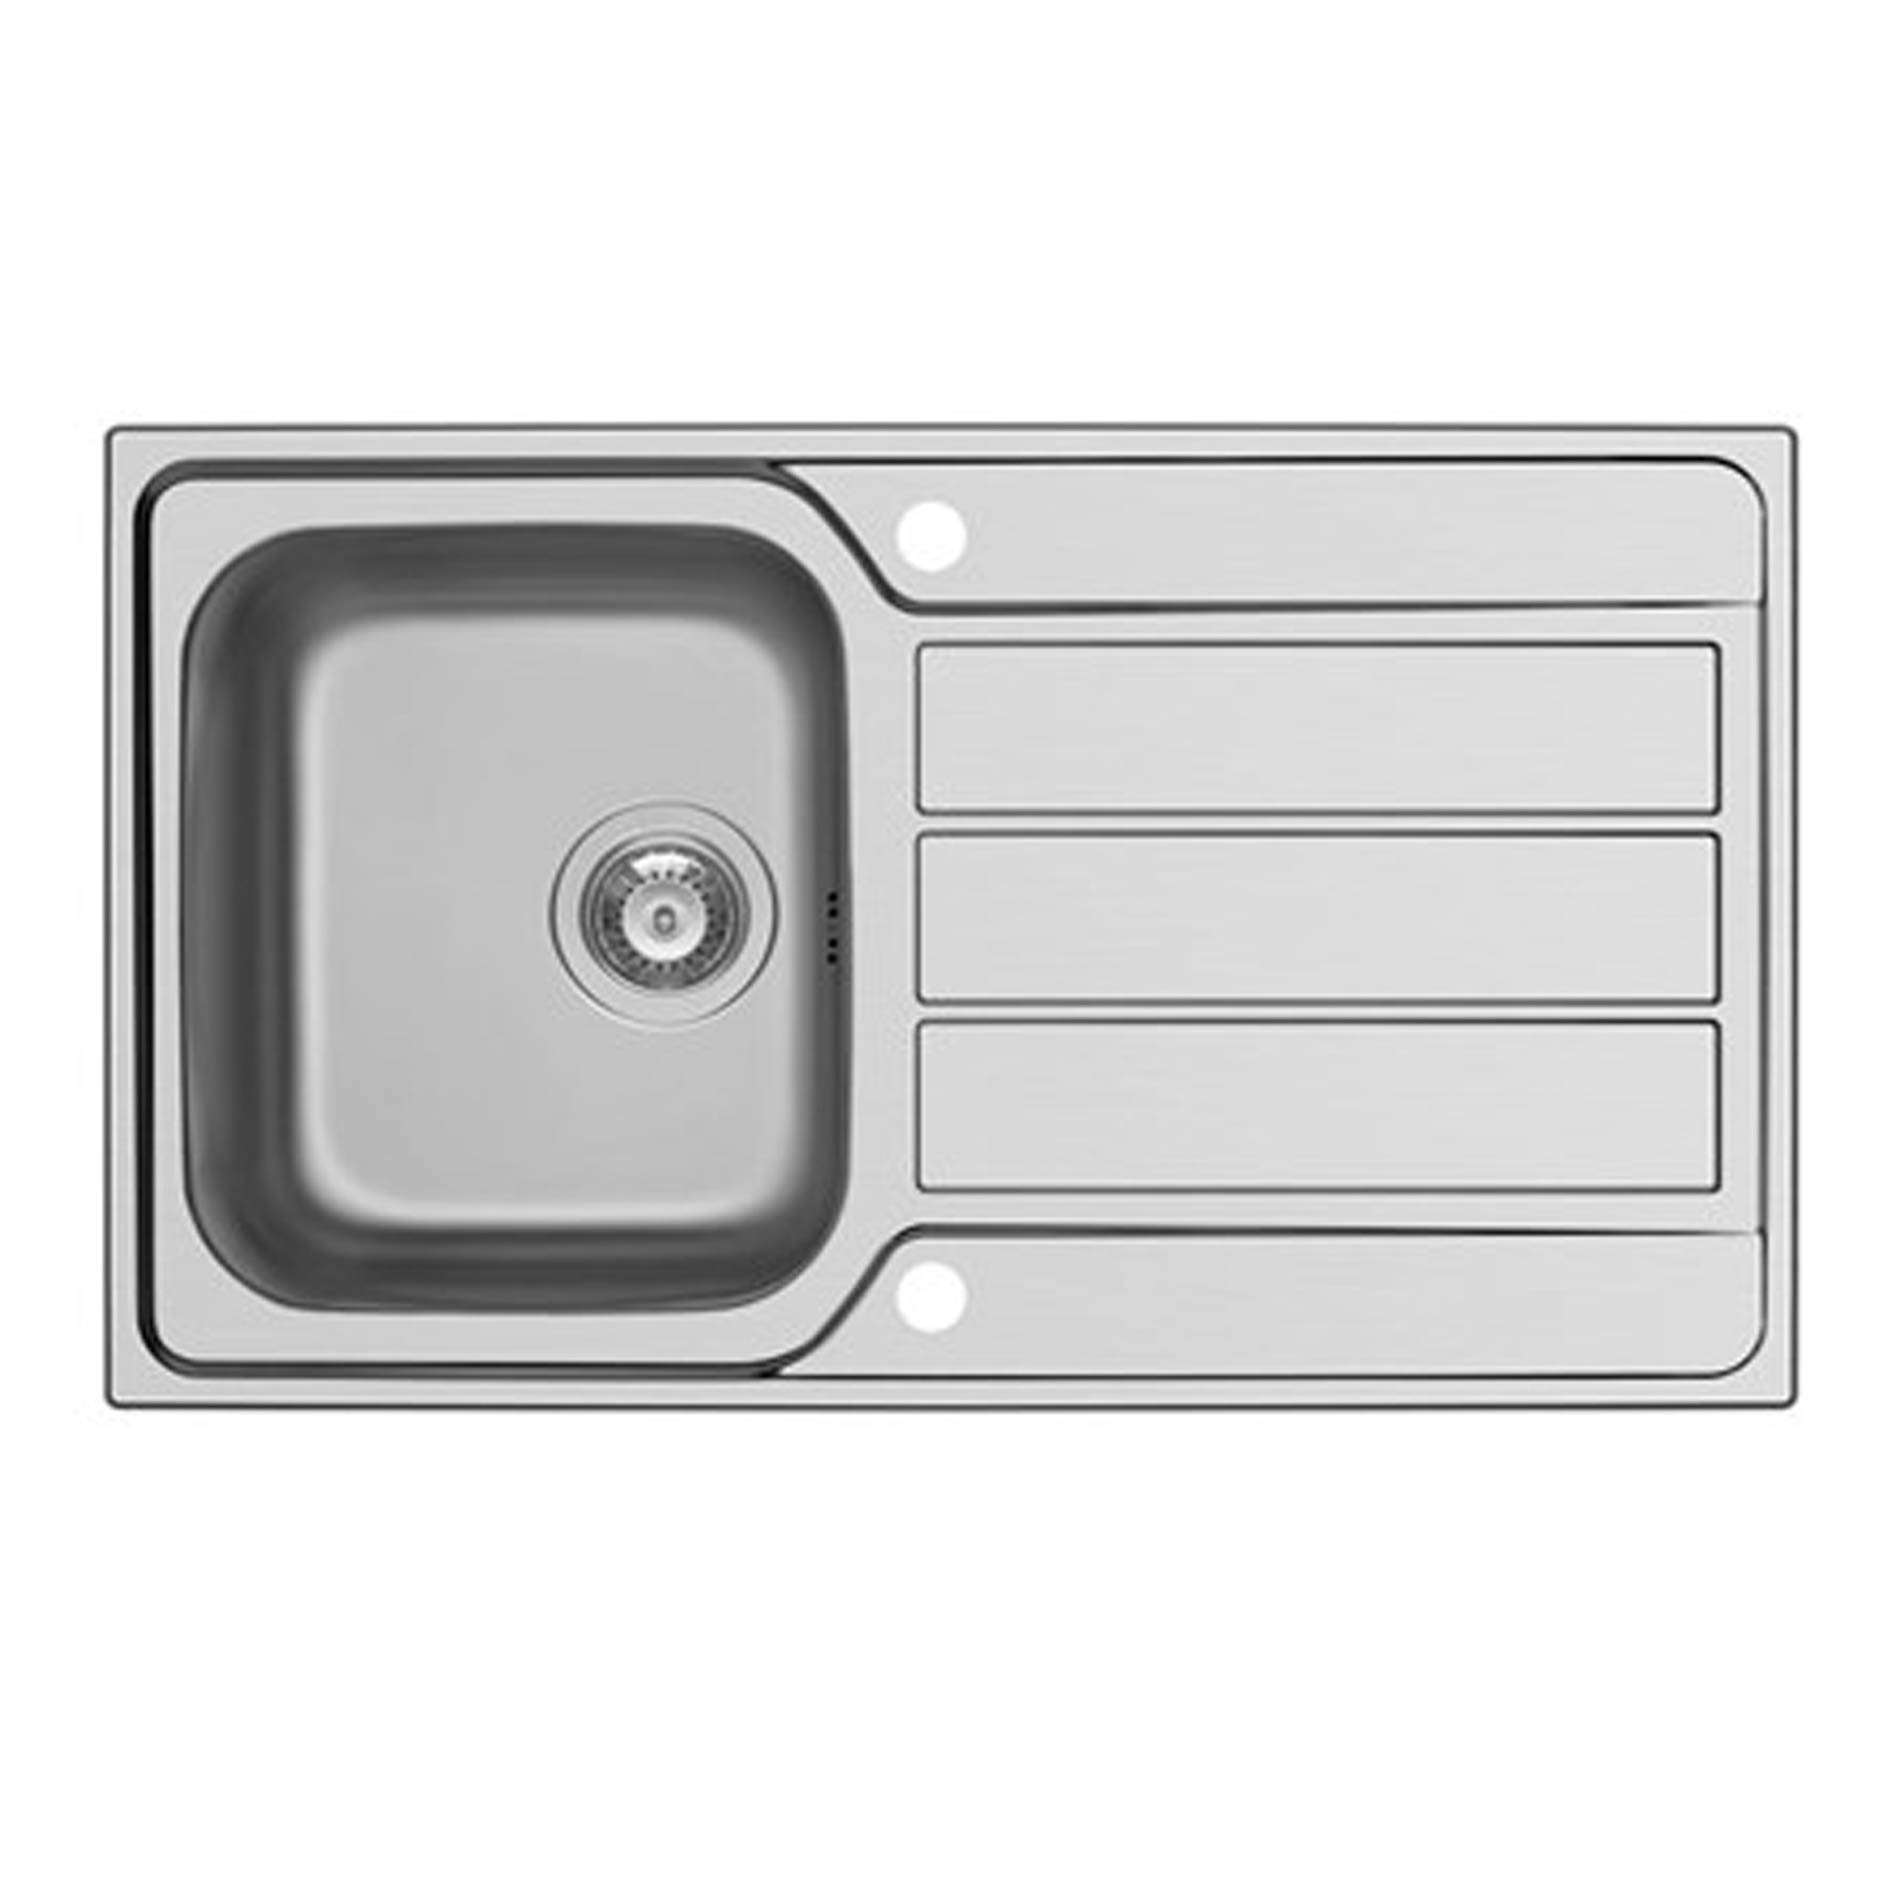 Clearwater: Mistral Single Bowl Stainless Steel Sink - Kitchen Sinks ...